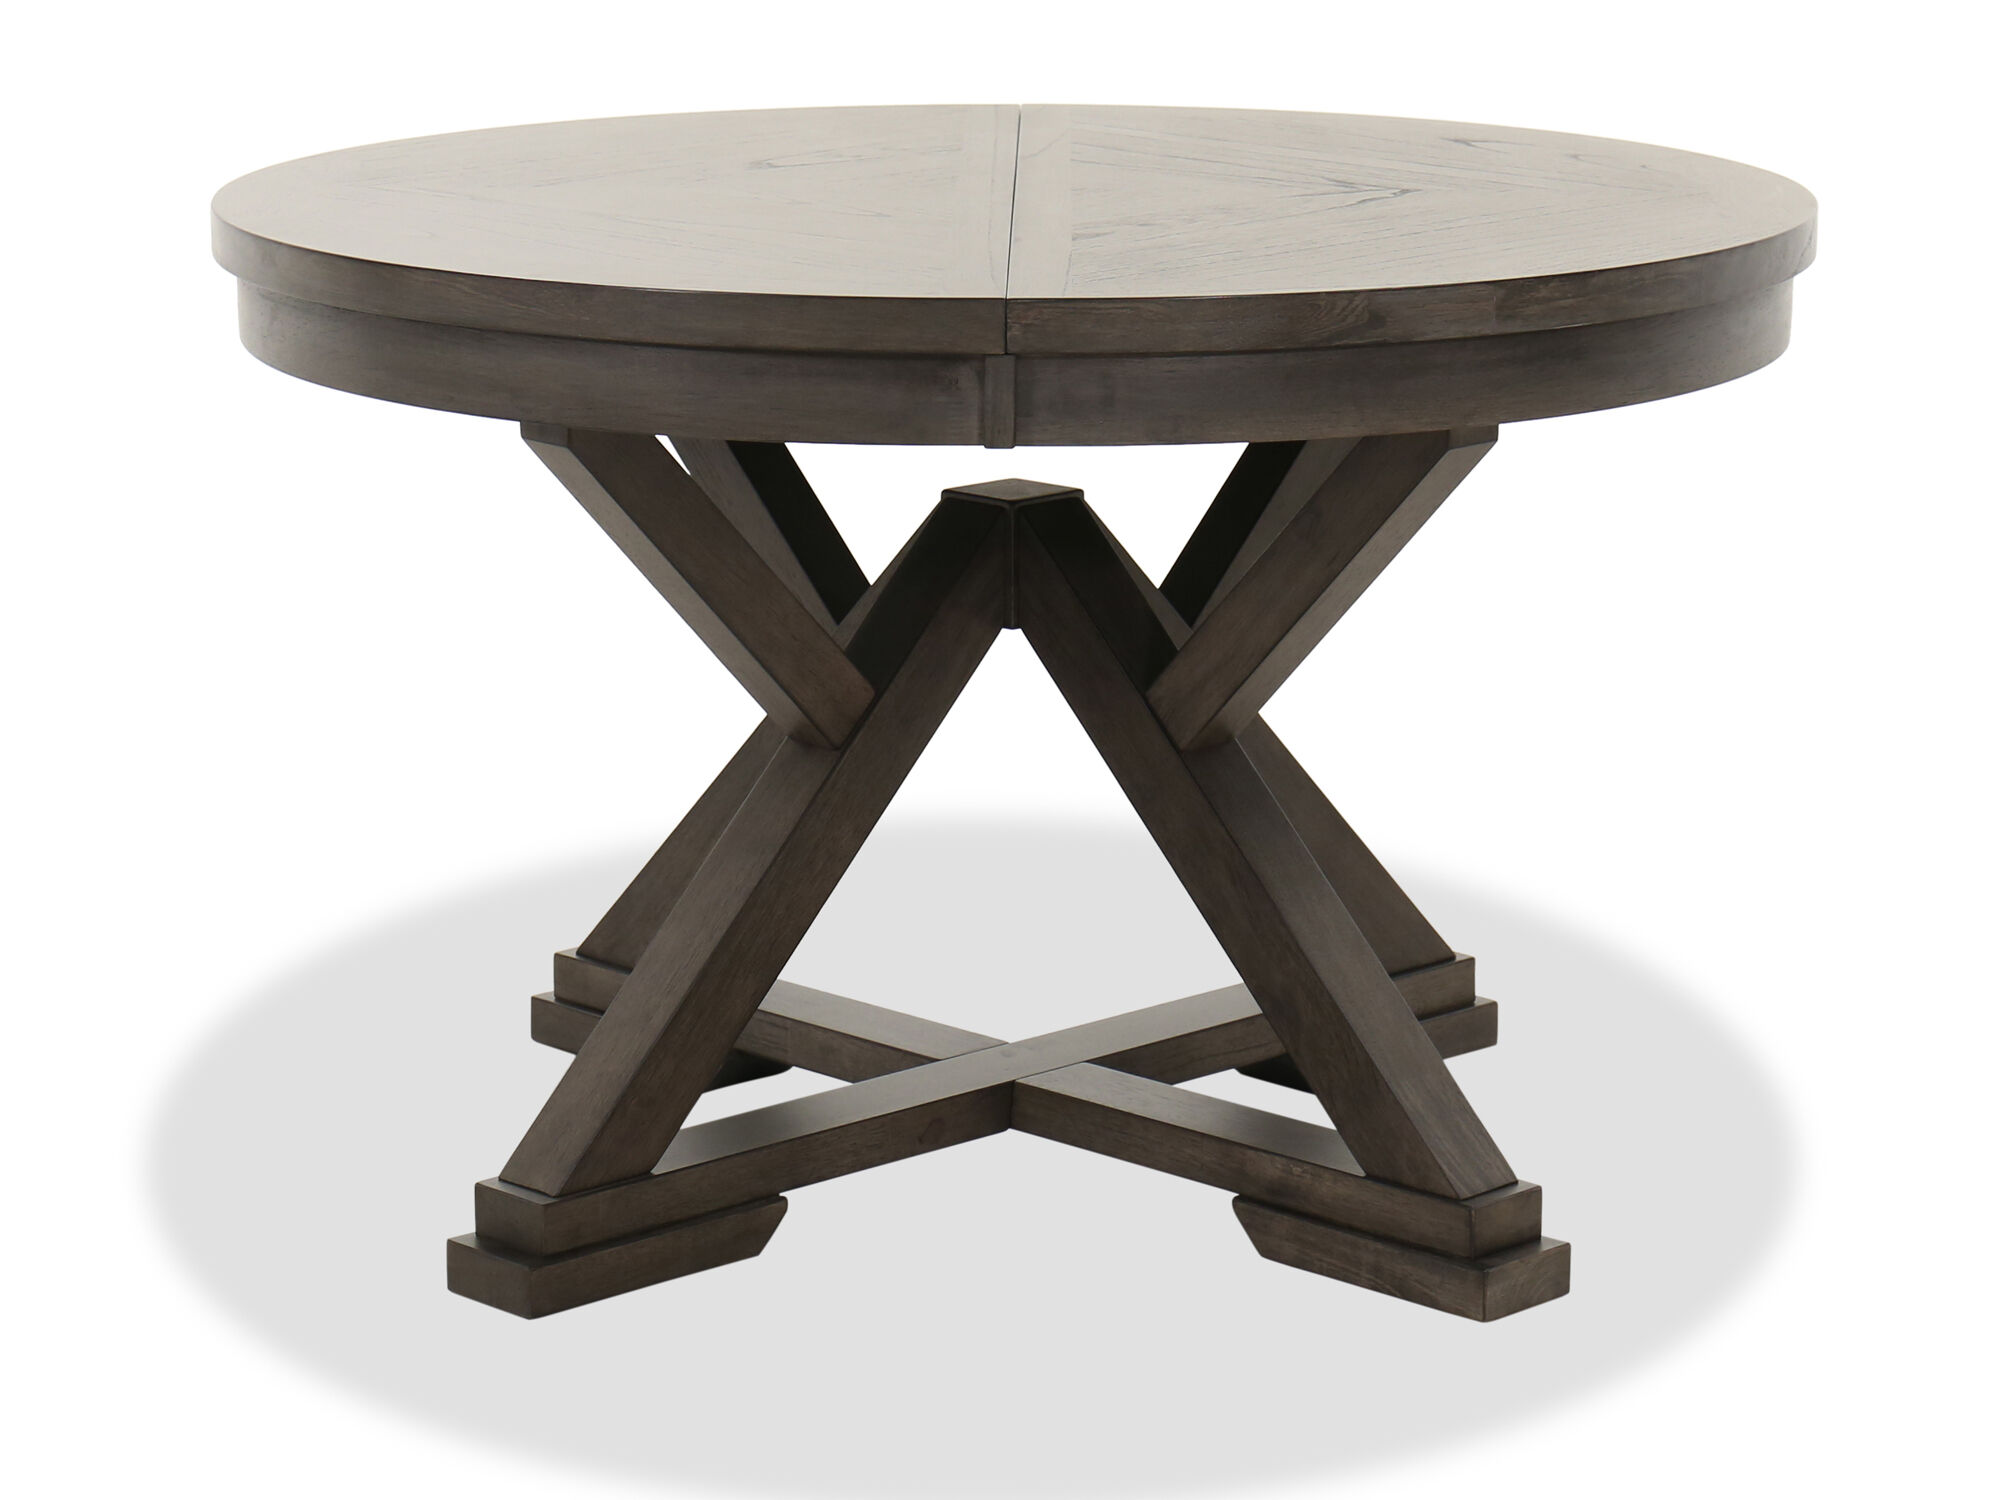 Transitional 48 To 66 Round Extension Dining Table In Brown Mathis Brothers Furniture